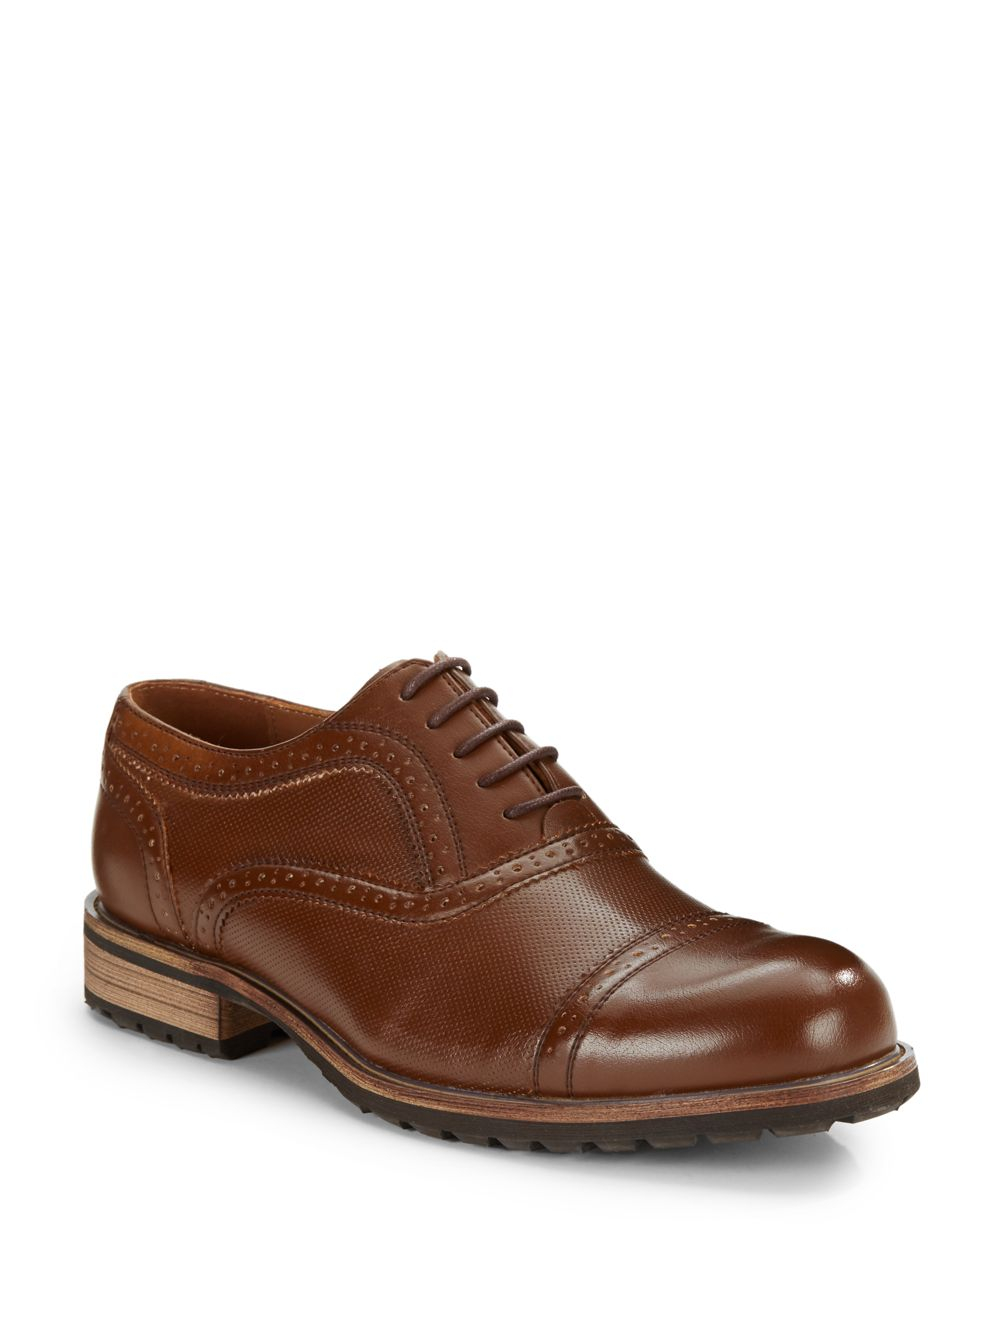 steve madden perforated brogue dress shoes in brown for